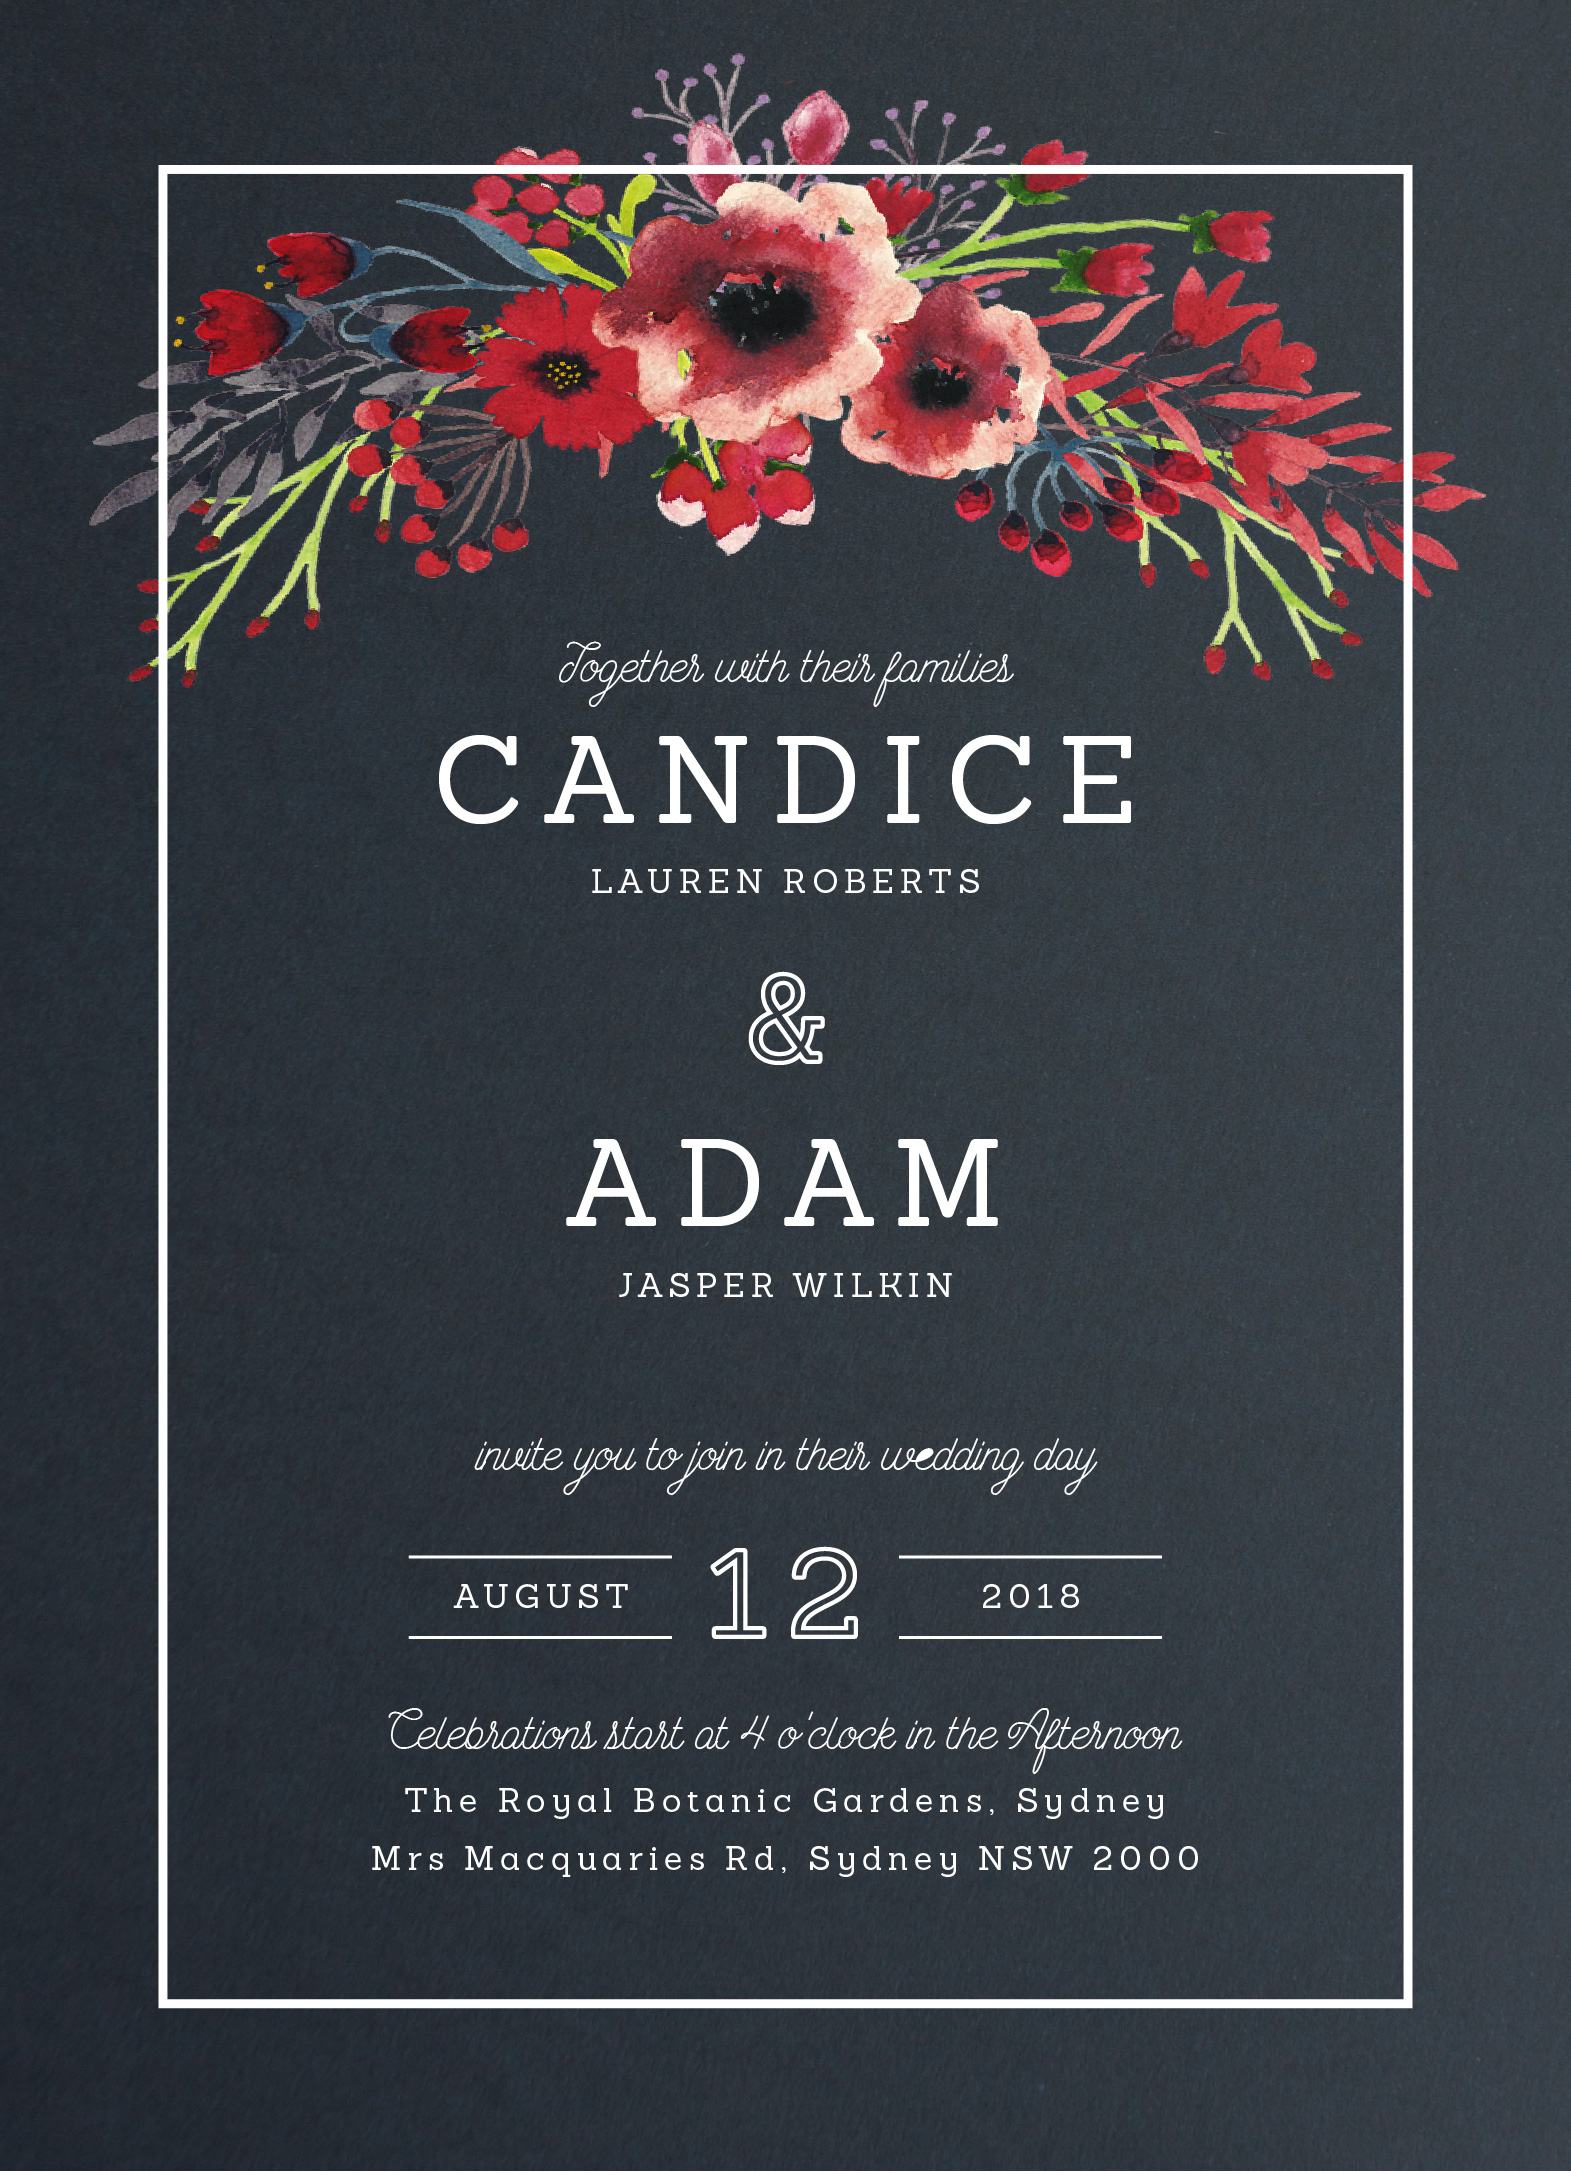 Grand Burgundy - Wedding Invitations